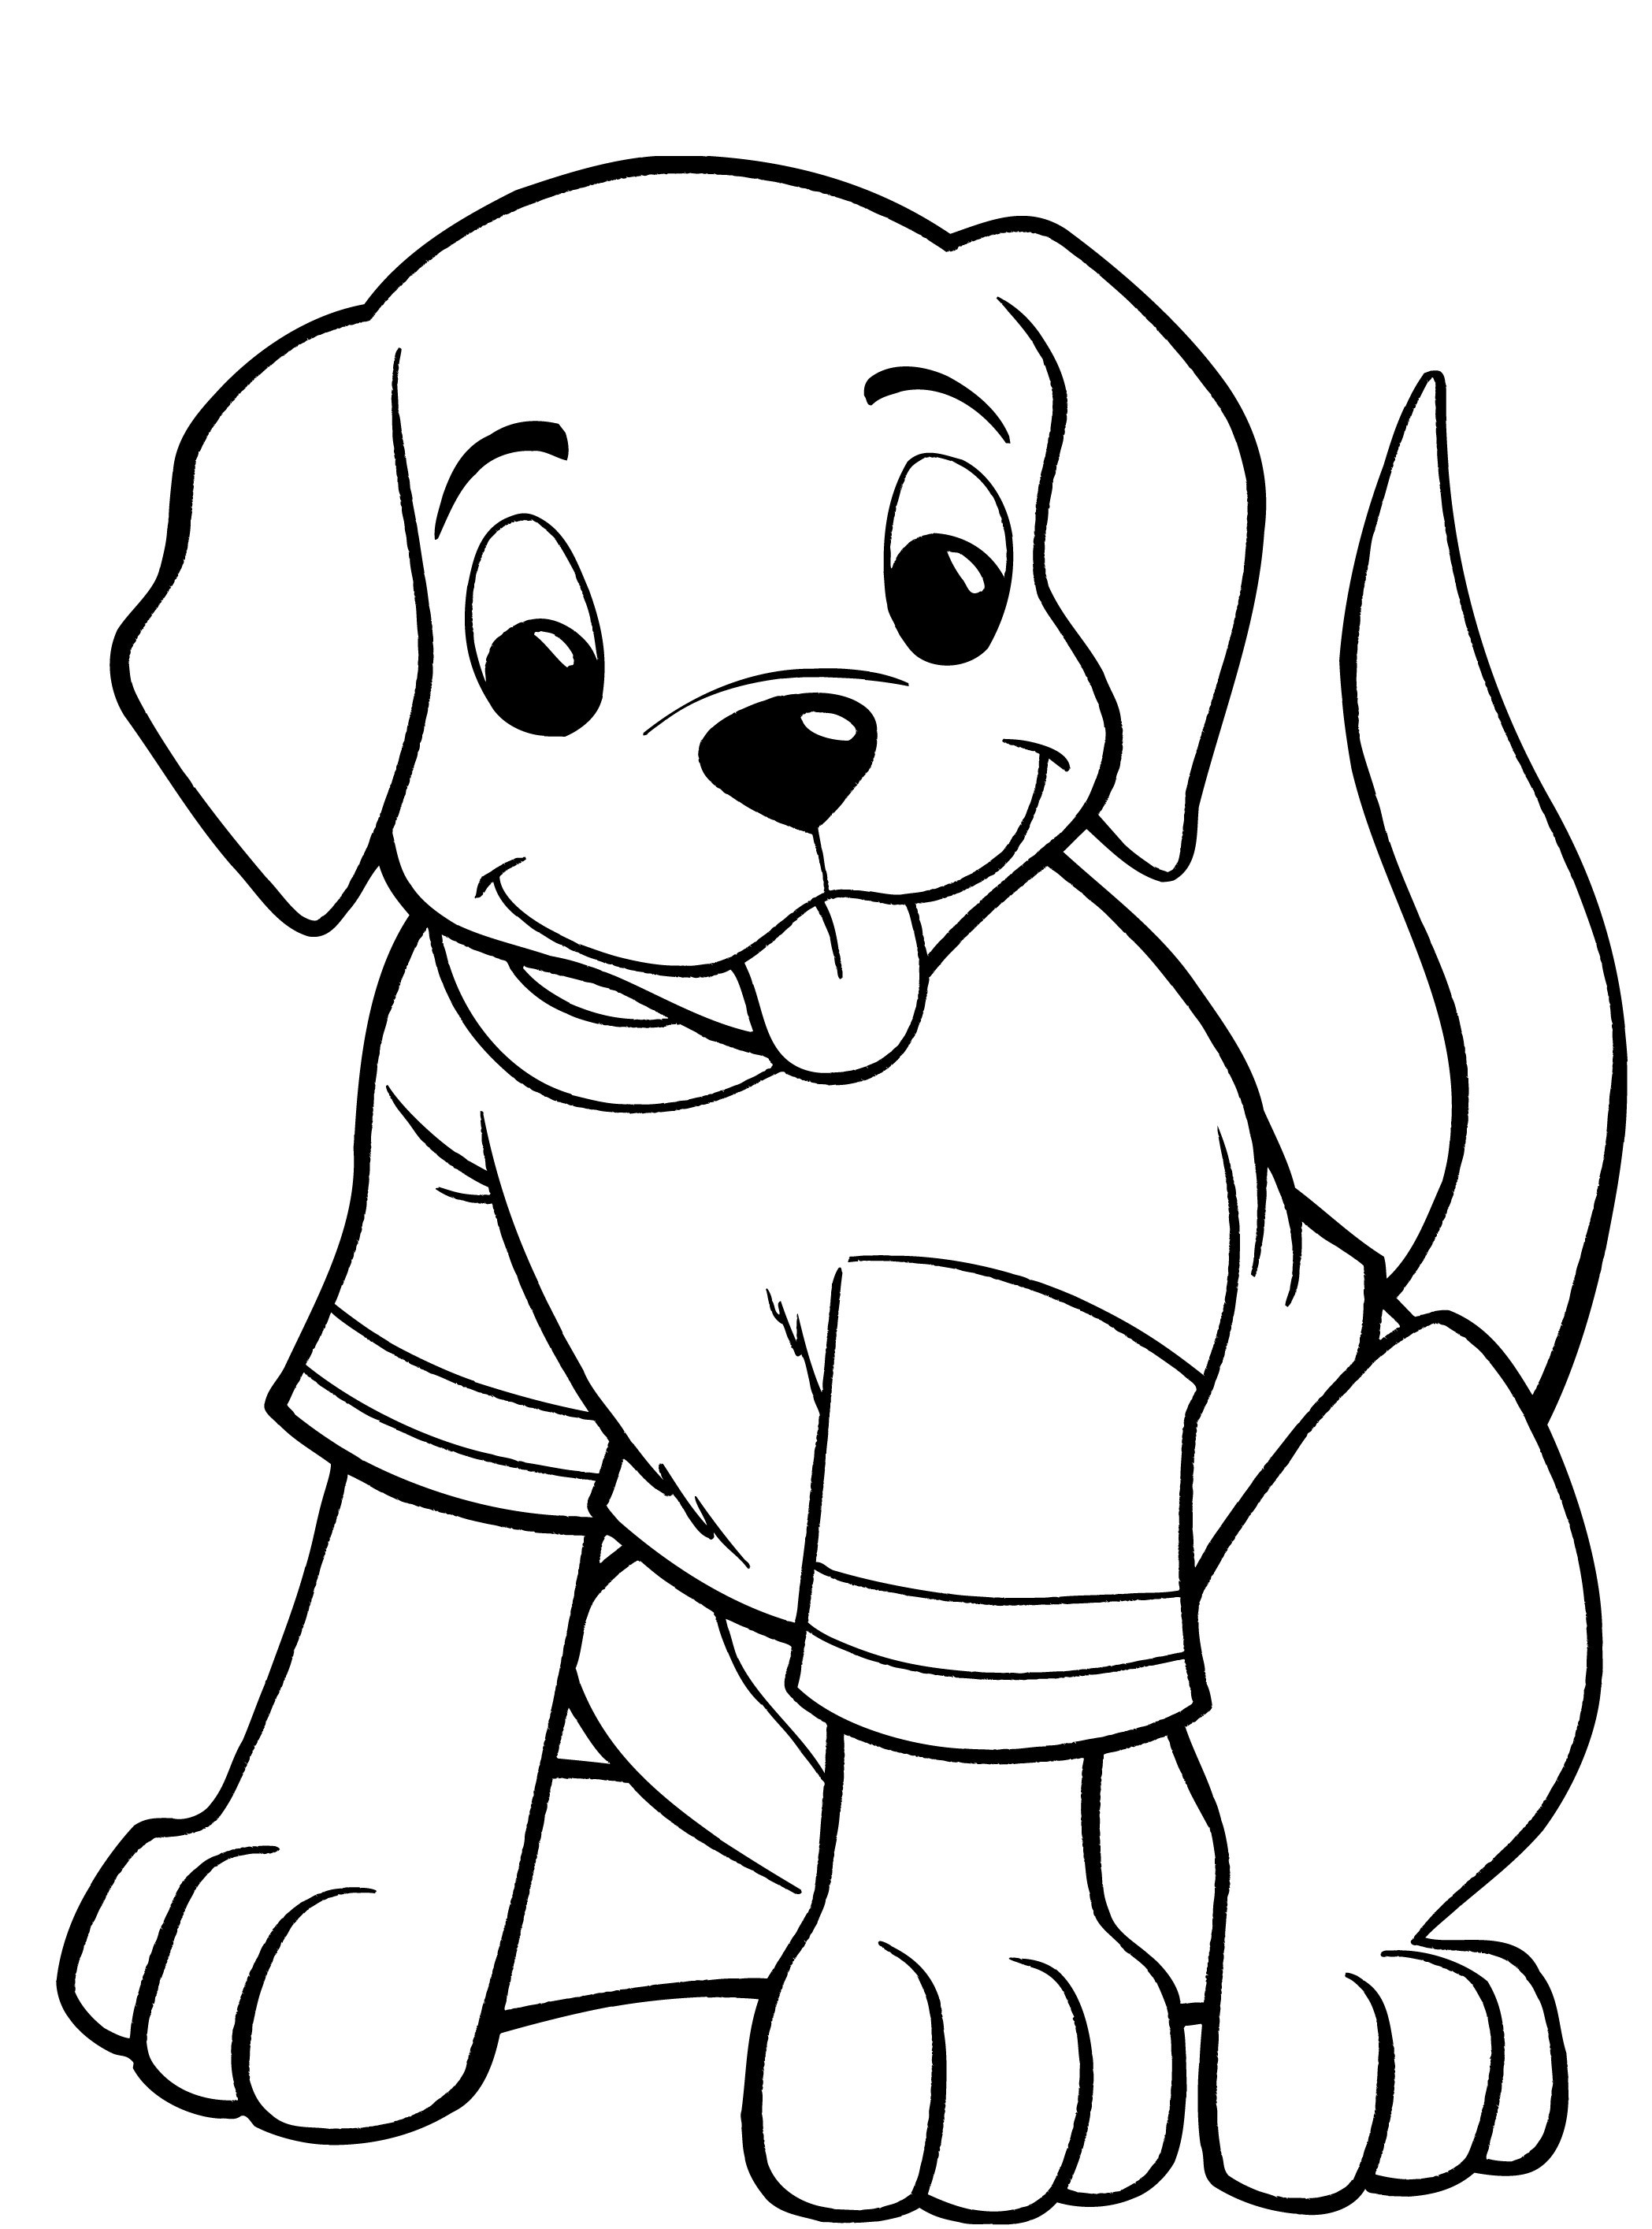 Dog coloring pages for kids preschool and kindergarten for Coloring pages of dogs